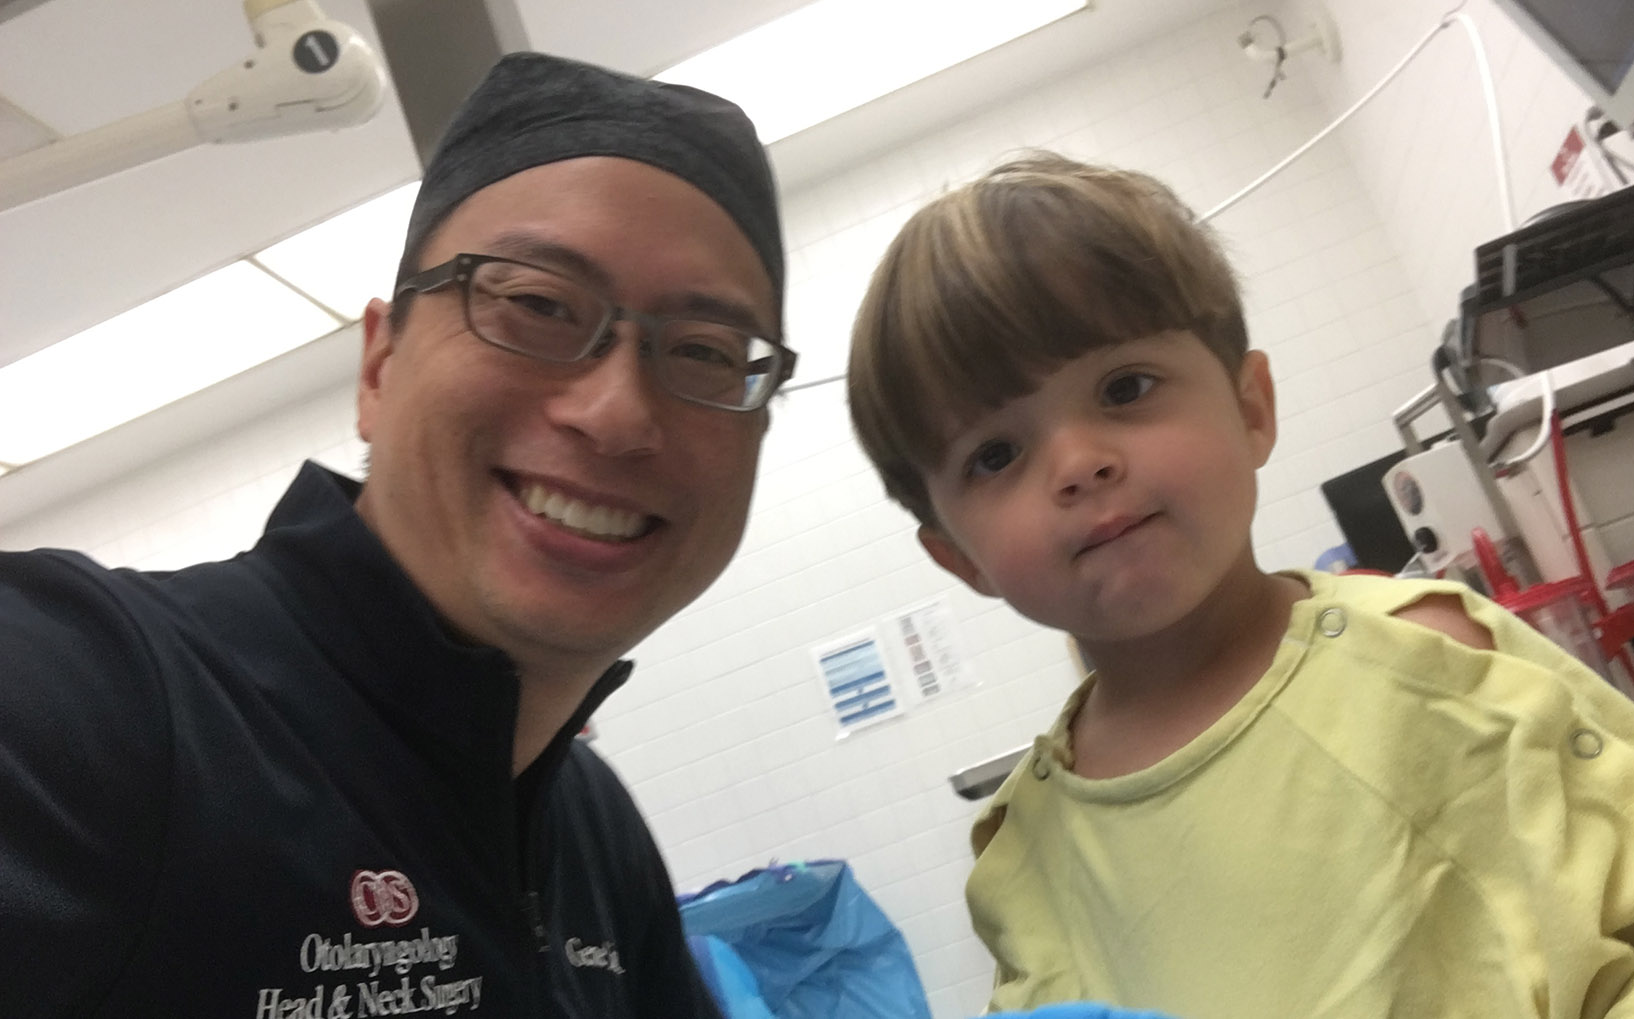 Dr. Liu with Ben Before the Surgery